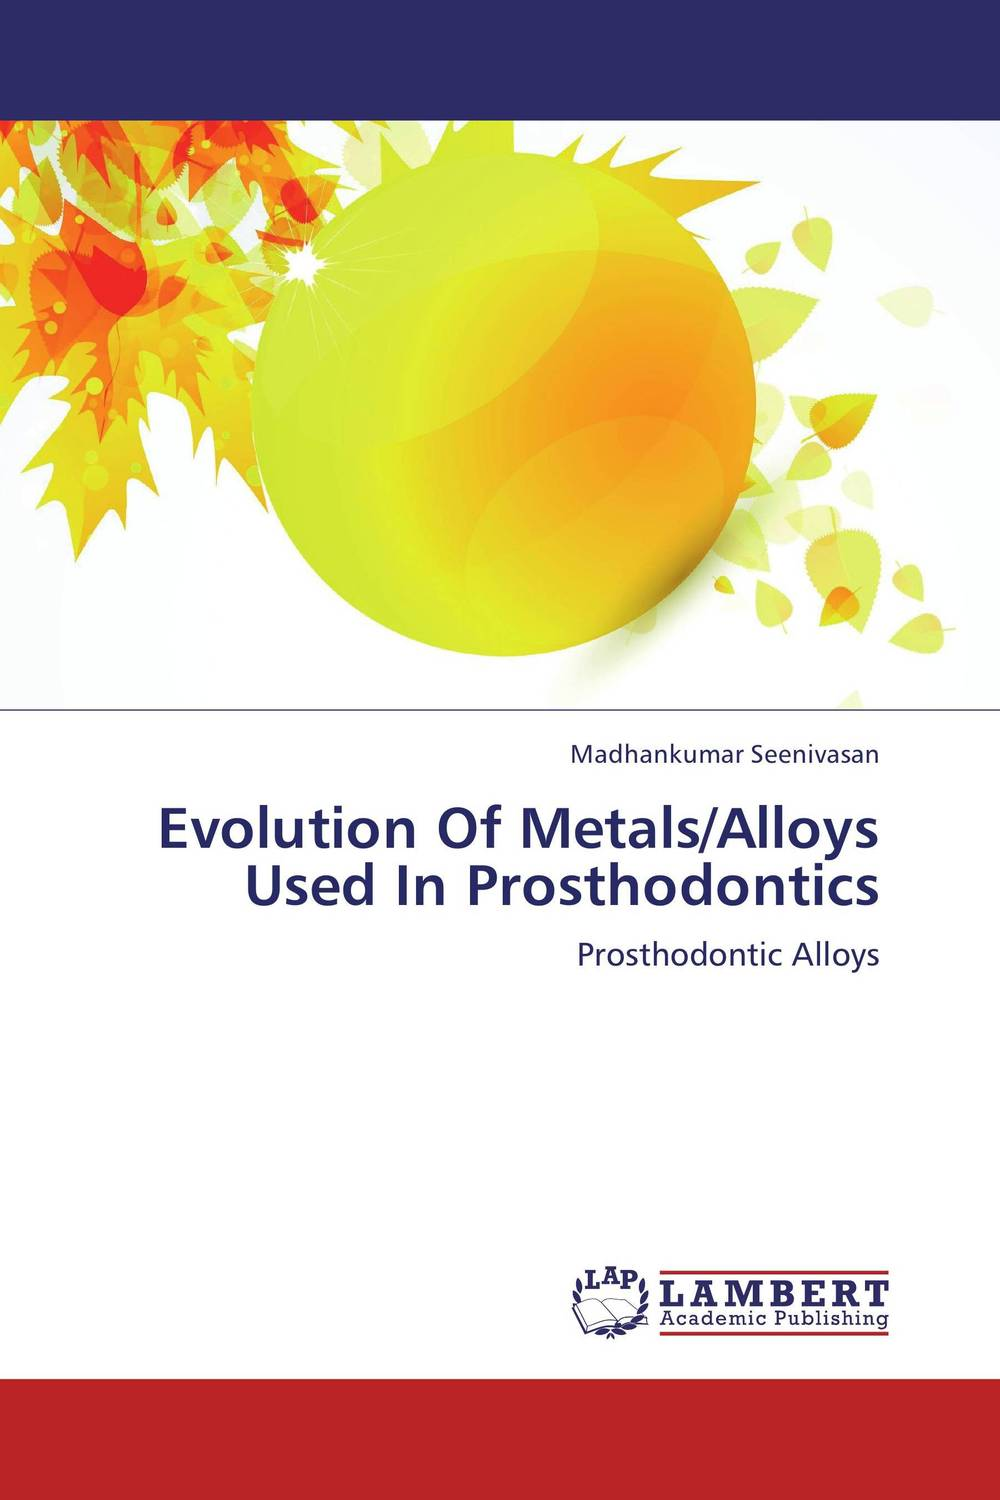 Evolution Of Metals/Alloys Used In Prosthodontics